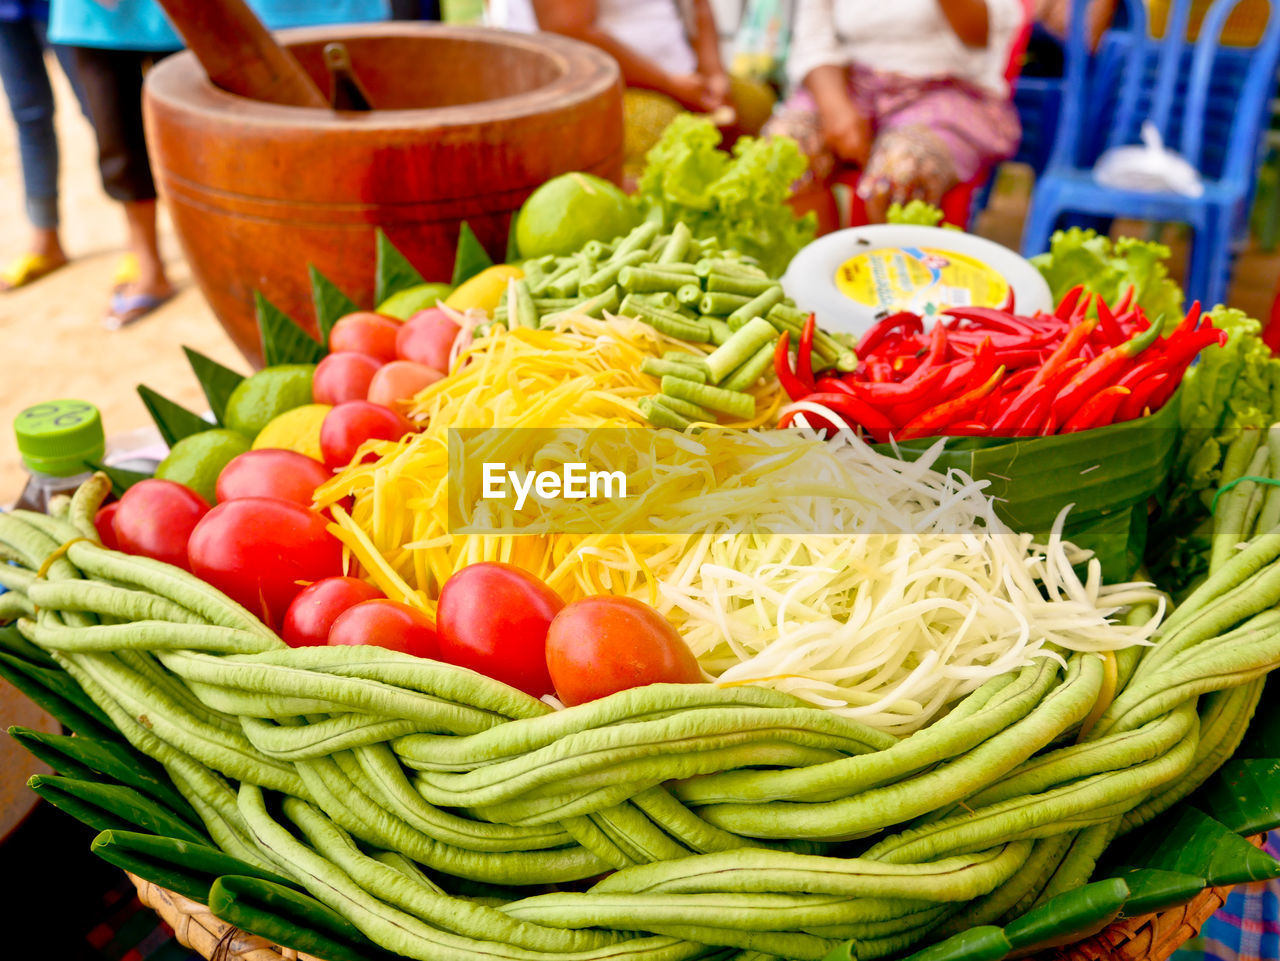 CLOSE-UP OF FRUITS WITH VEGETABLES